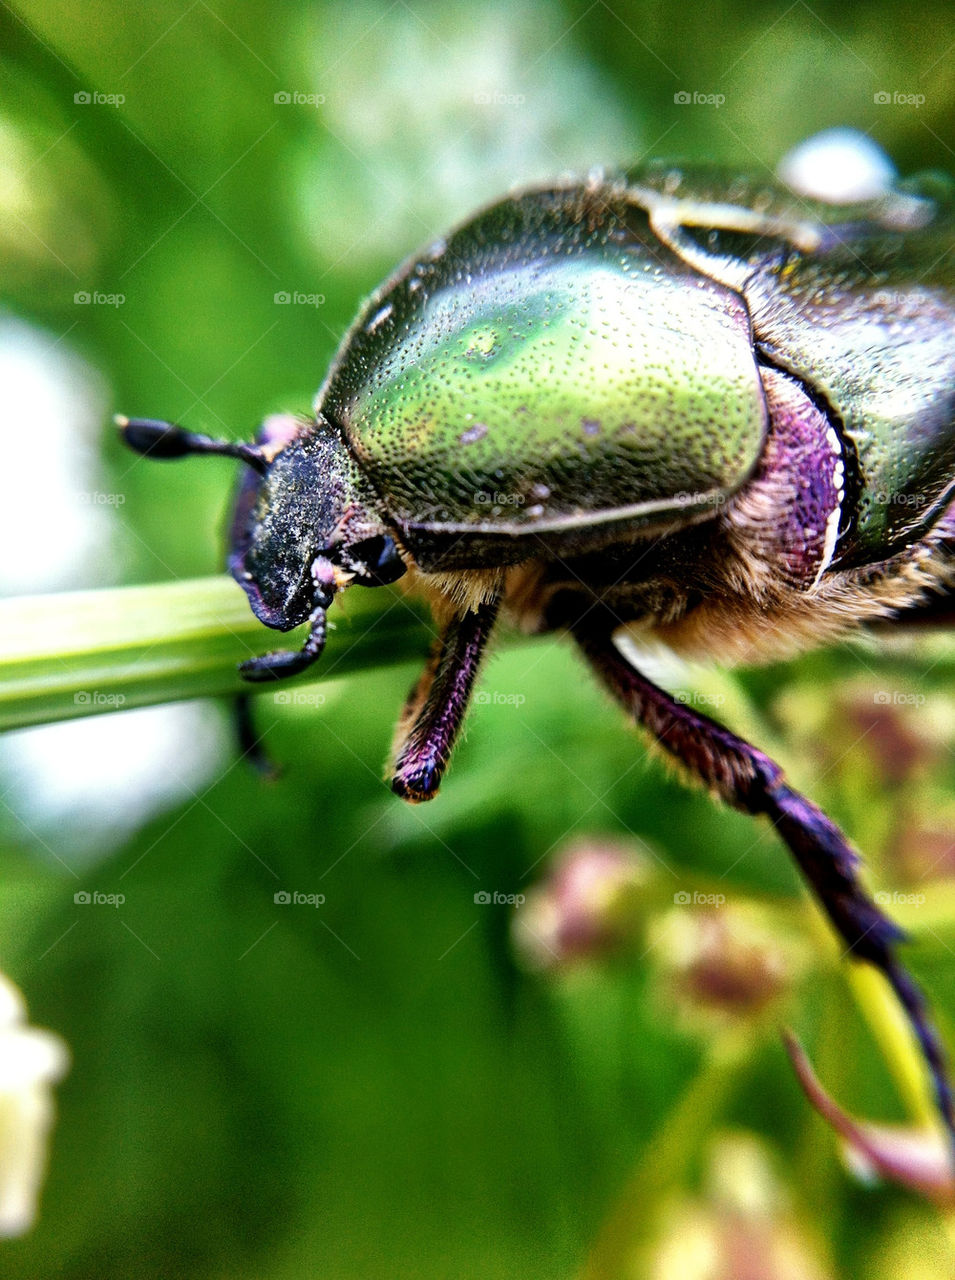 garden animals insects bugs by ka71